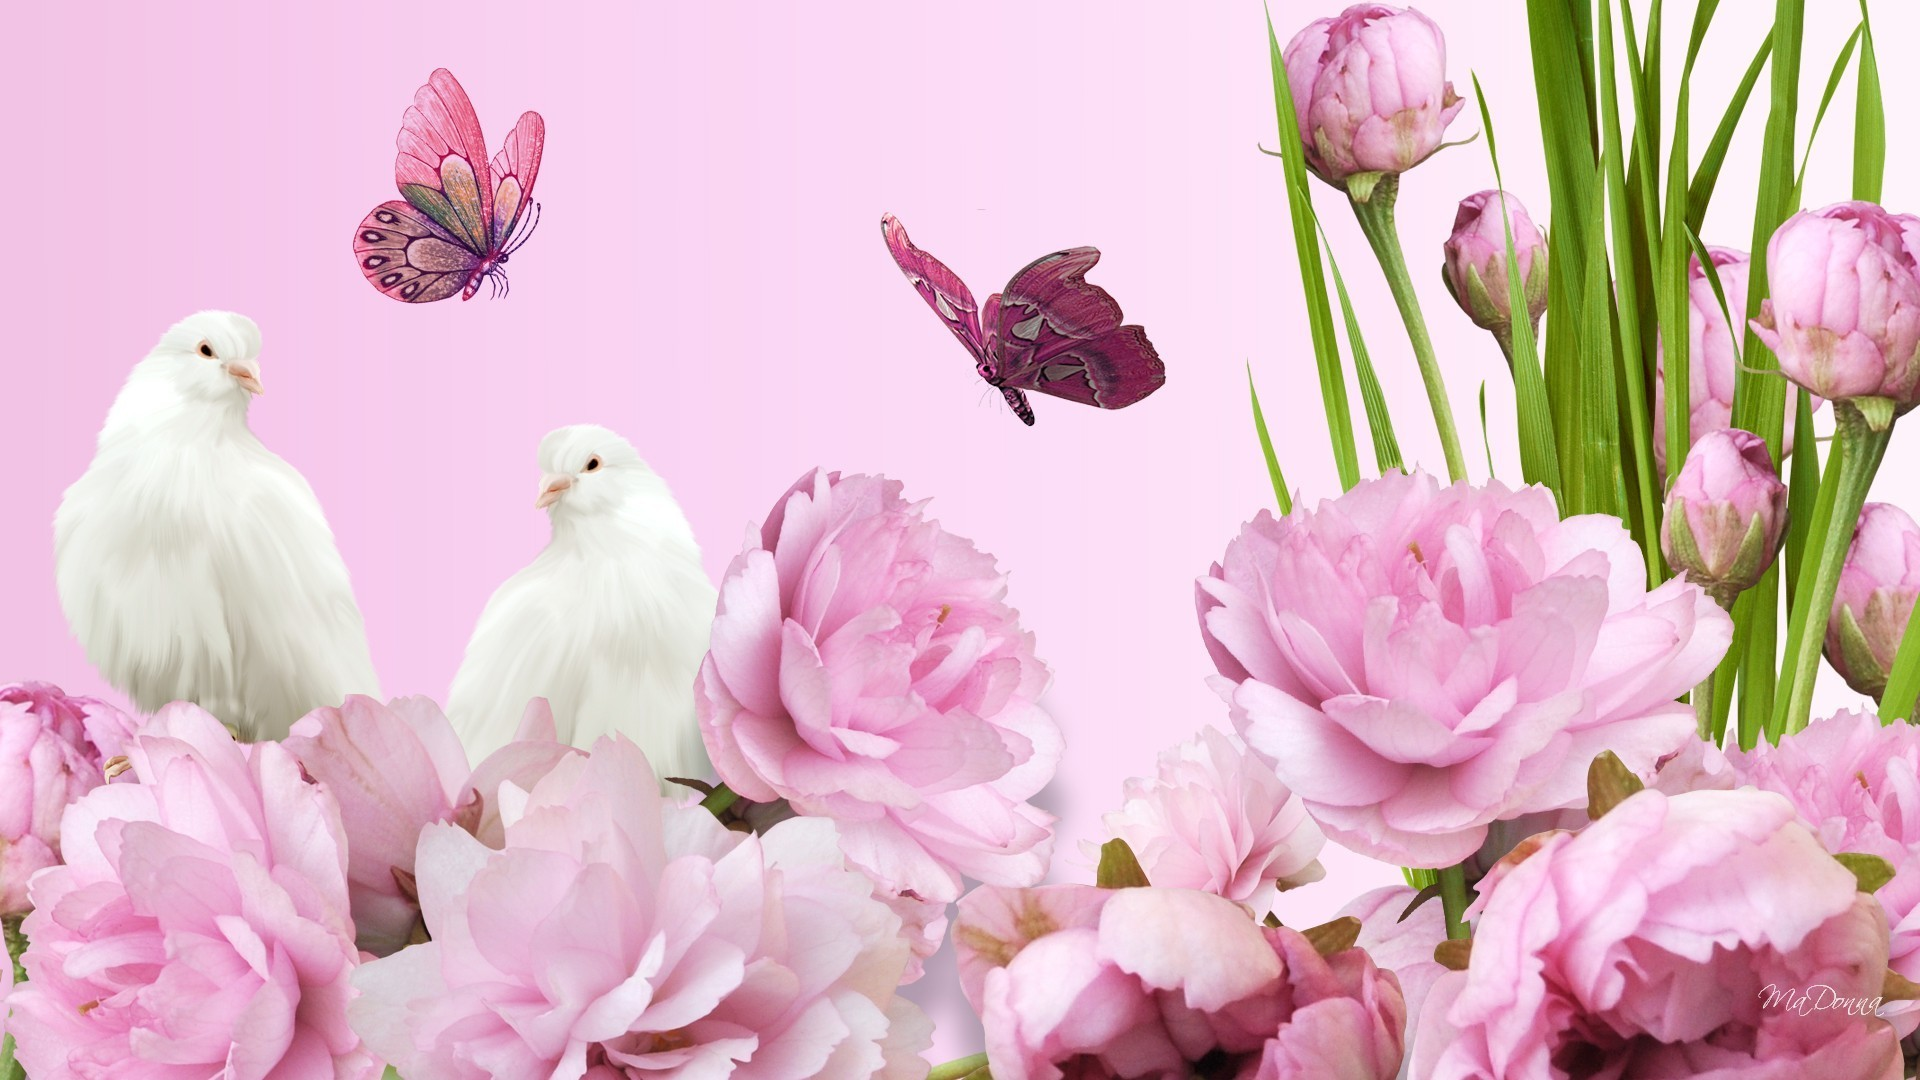 1920x1080 Pink Tag - Peaceful Flowers Doves Bright Spring Peonies Pink Lush Summer  Pigeon Fragrant Graceful Aroma